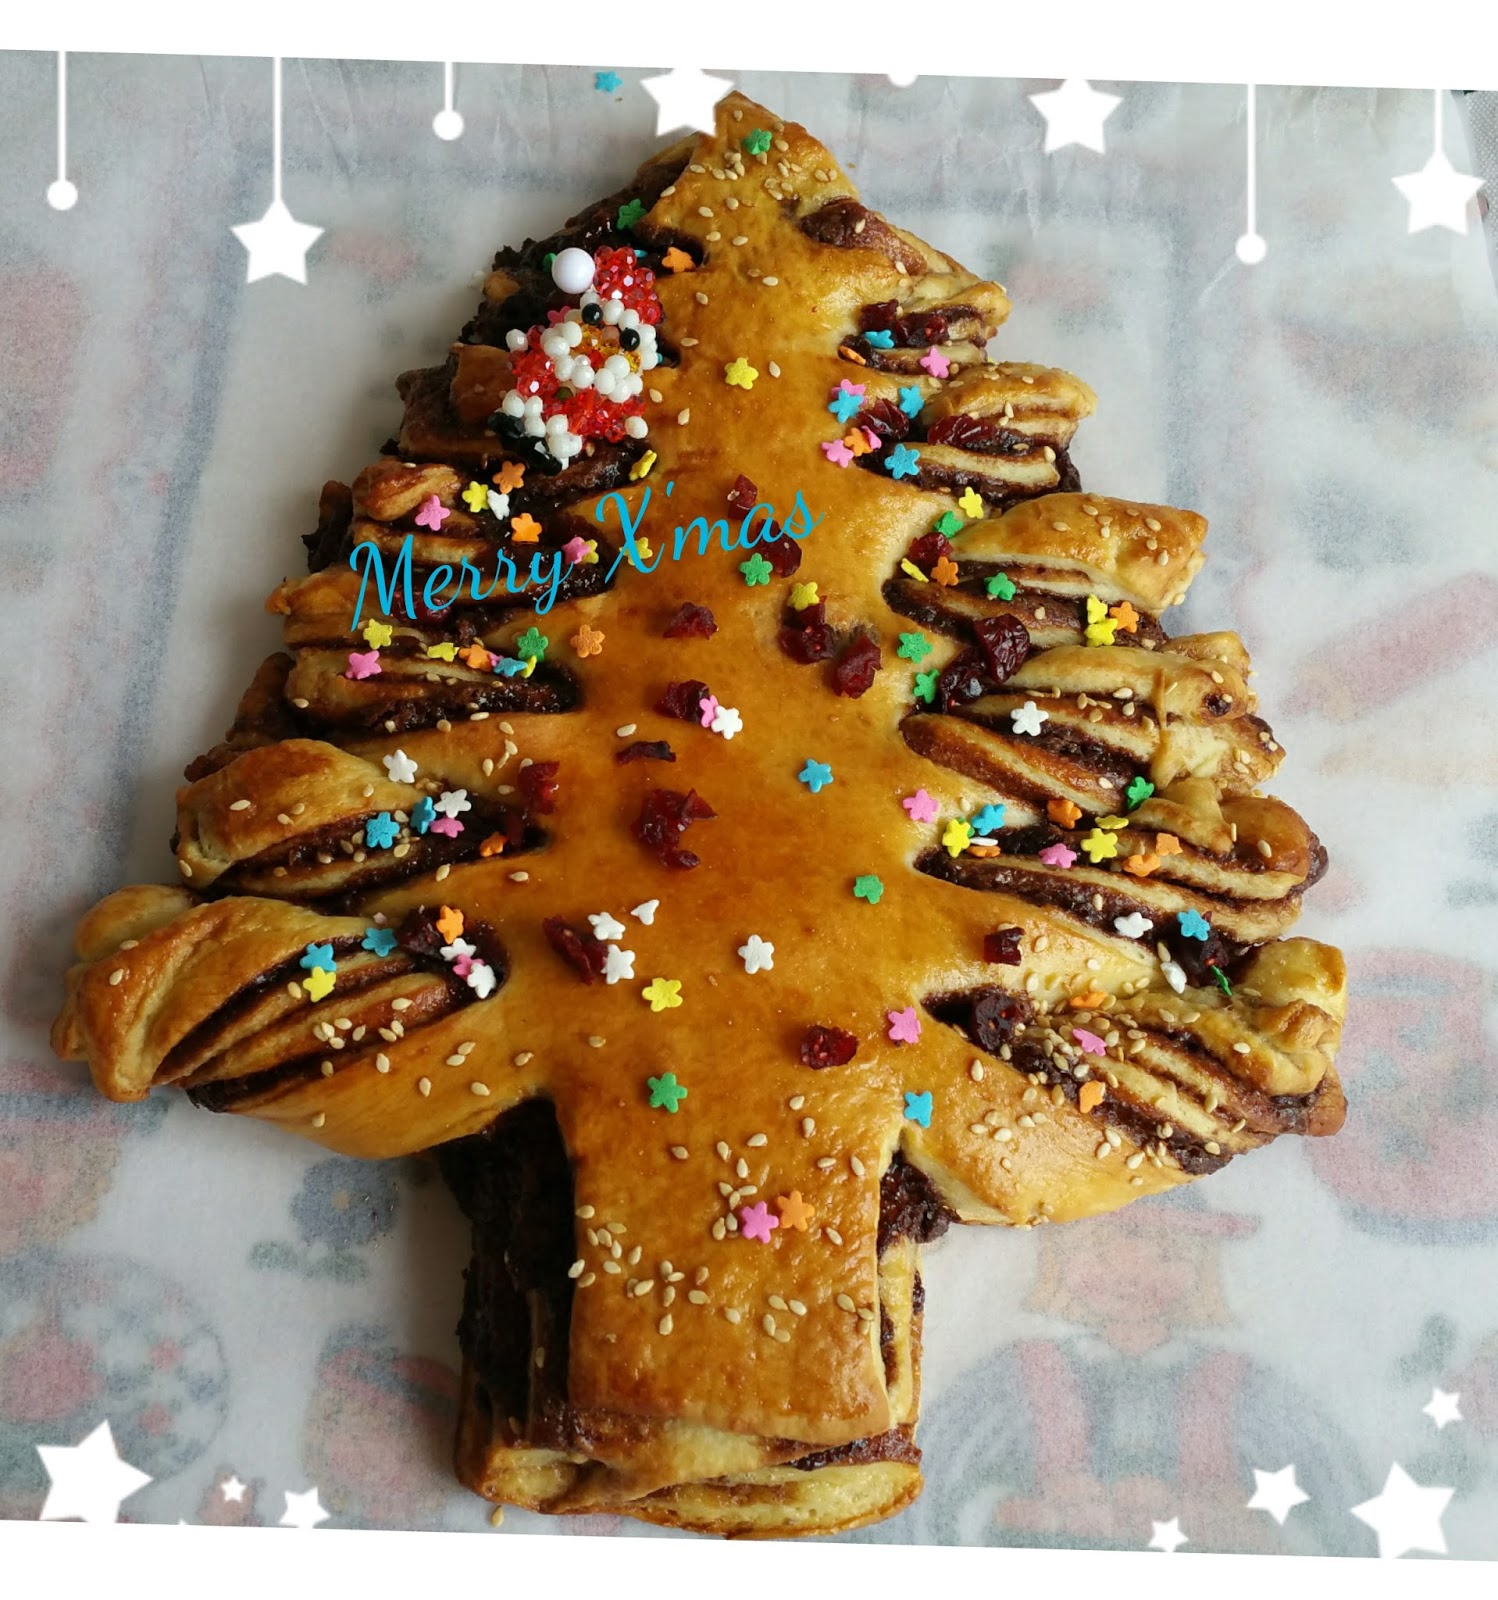 christmas tree nutella bread hi dear bloggers and friends today is christmas eve here i would like to wish everyone of you a very merry xmas and a